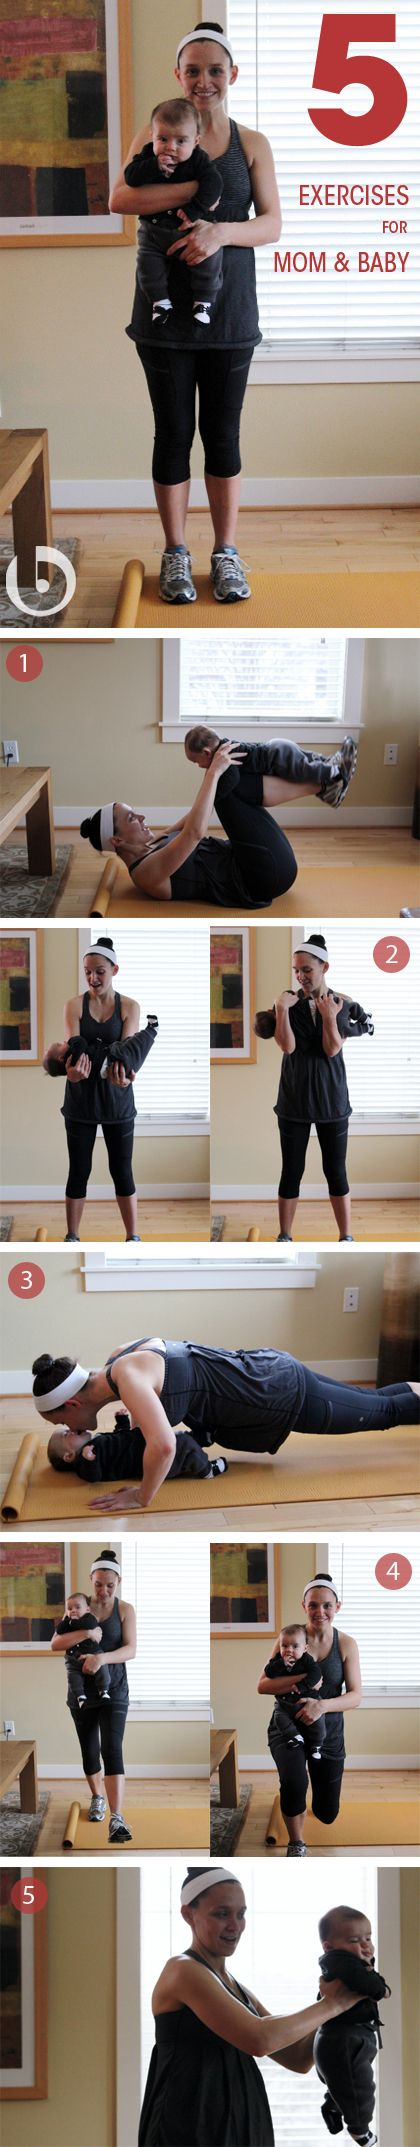 5 exercises for mom & babe